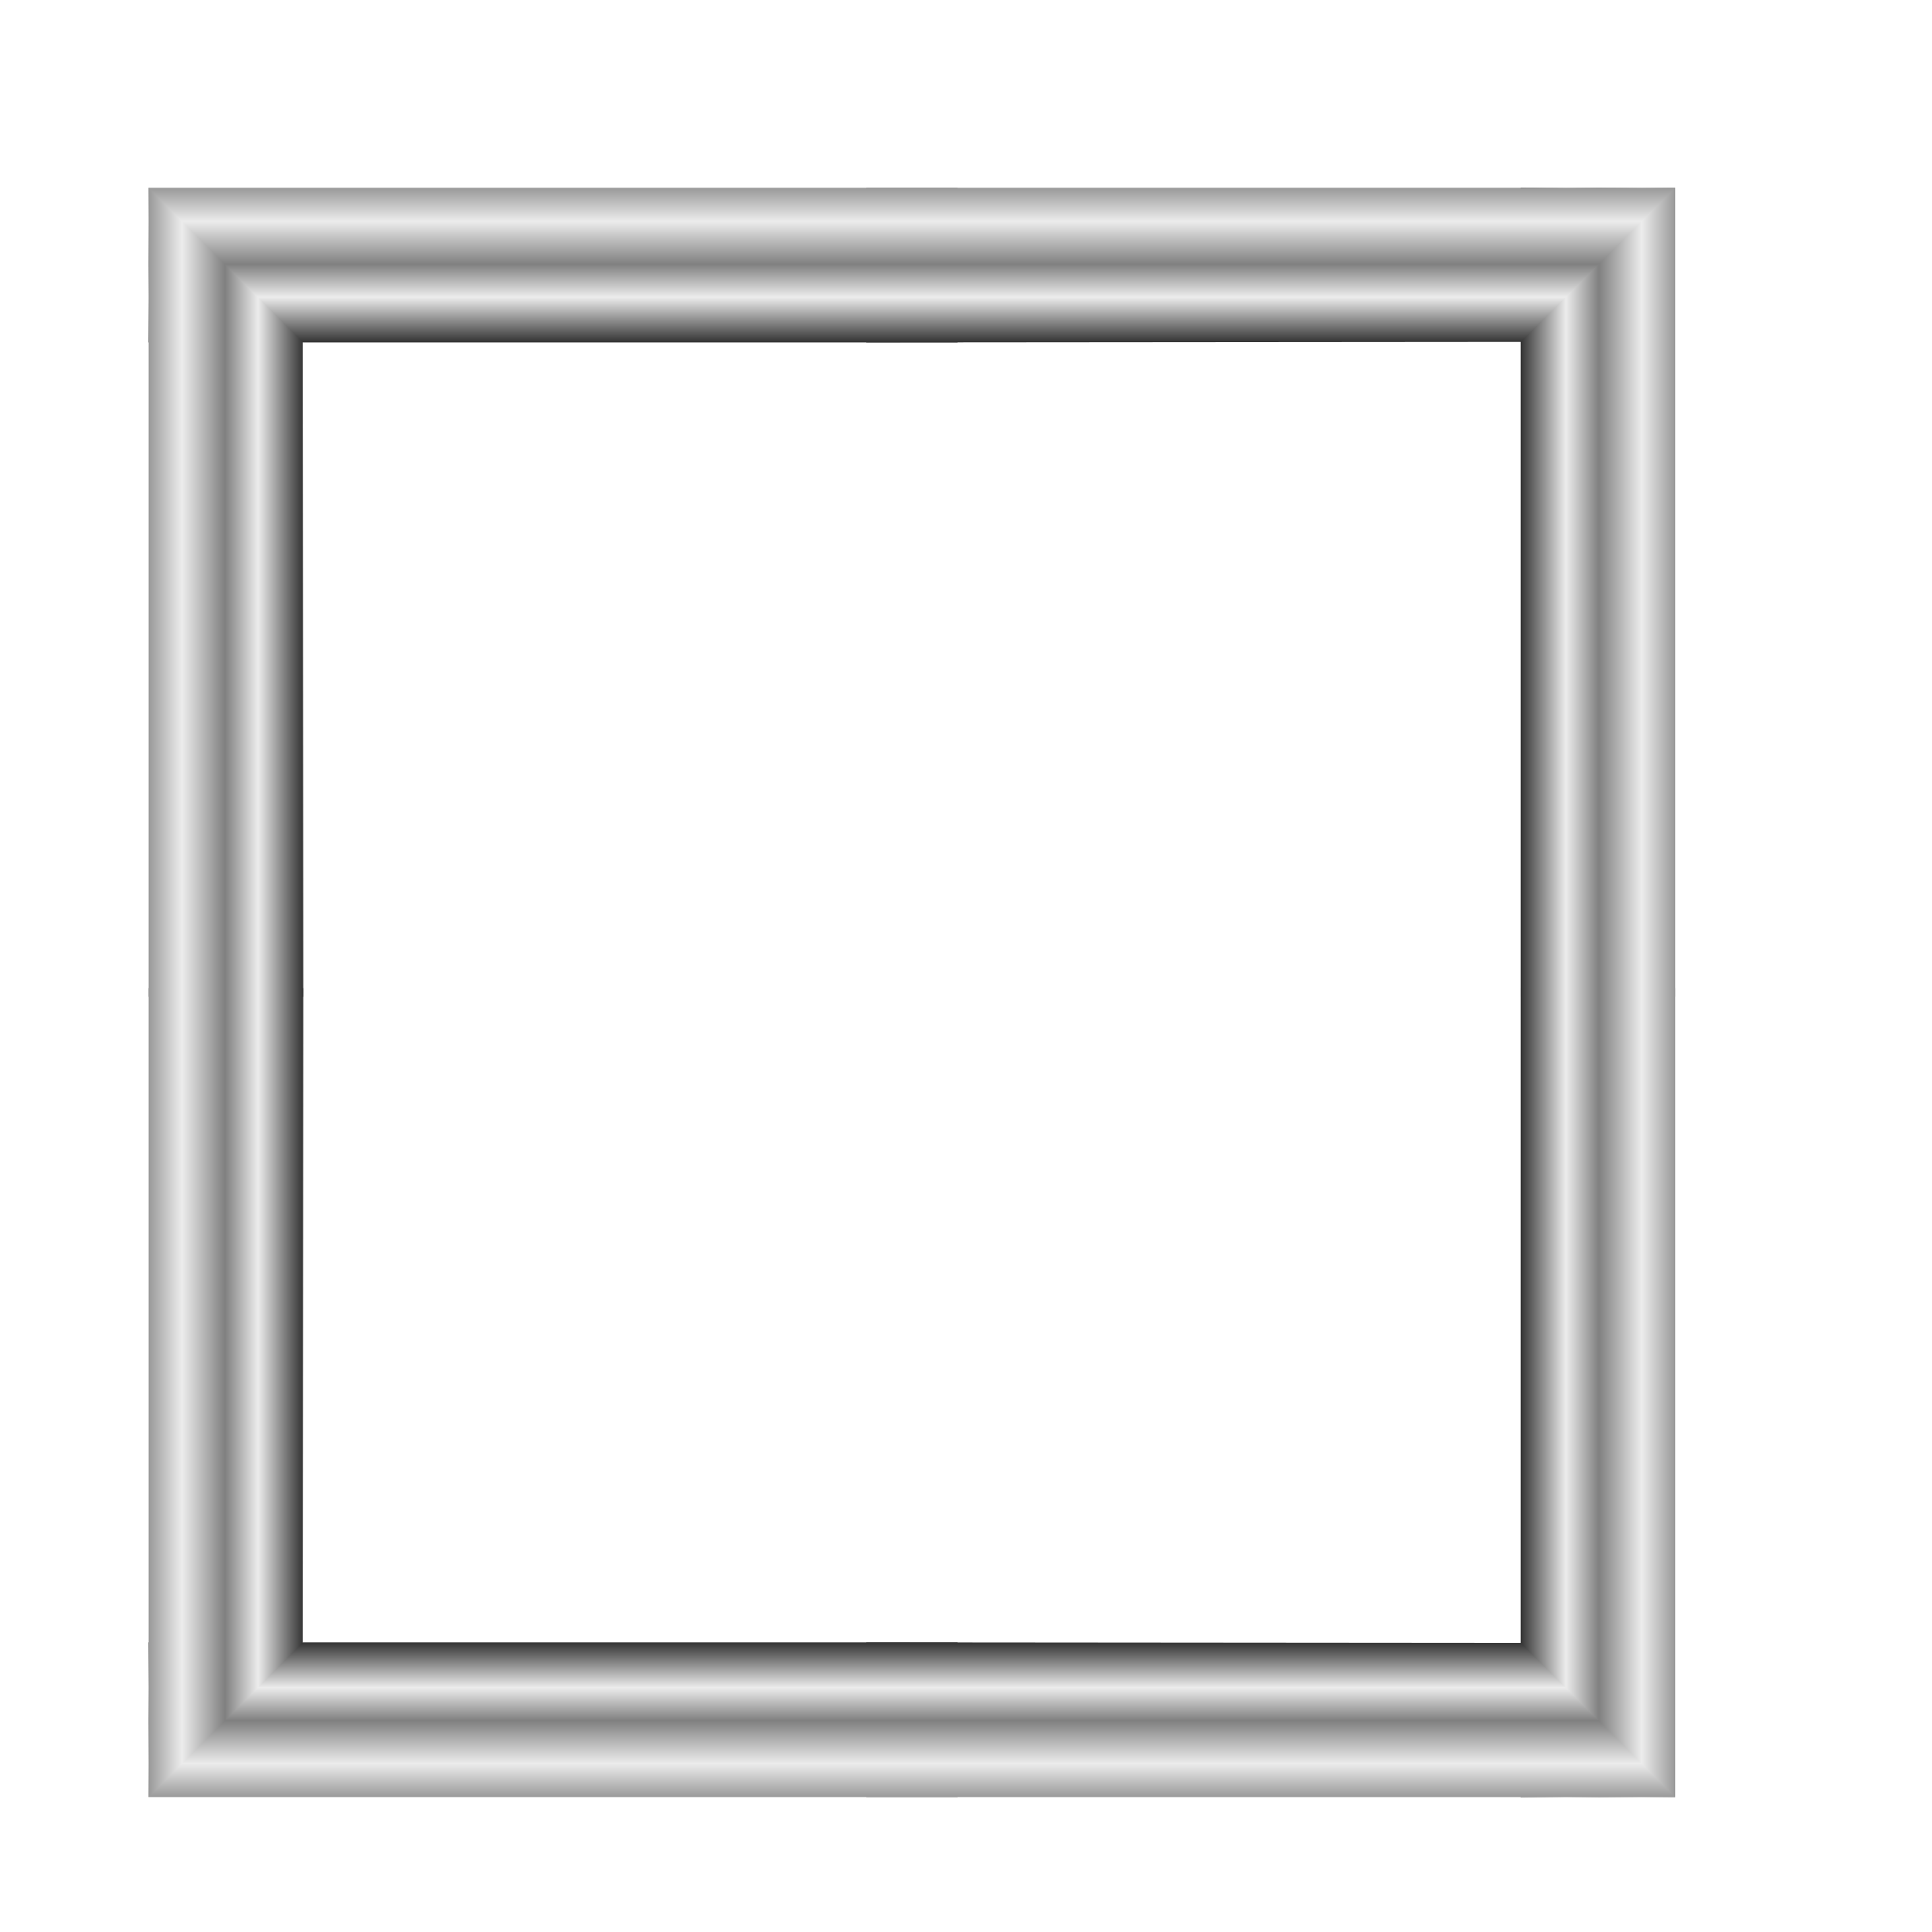 Picture frame by finao123